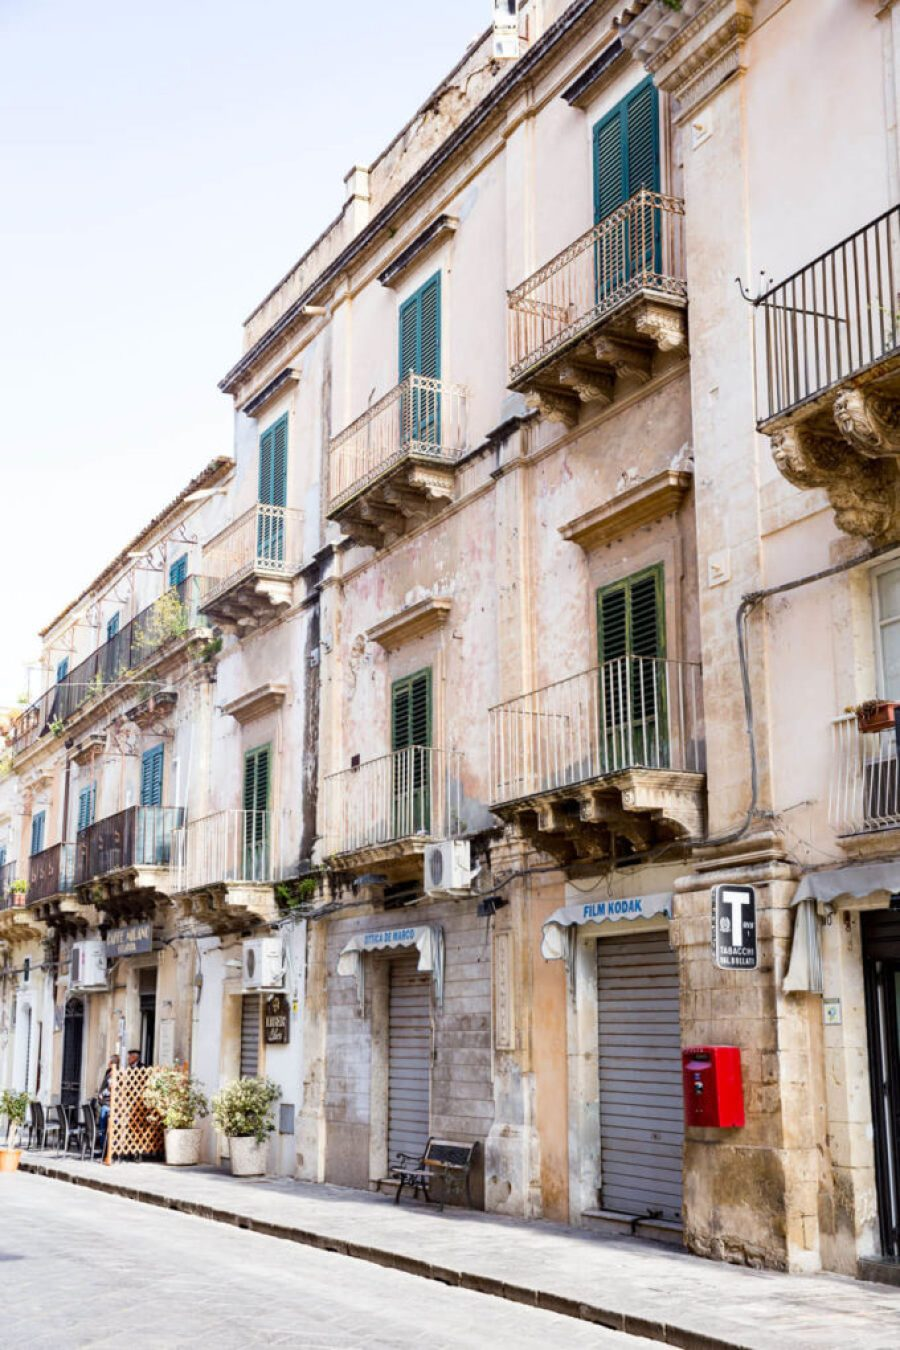 A guide to visiting Noto, Sicily Italy